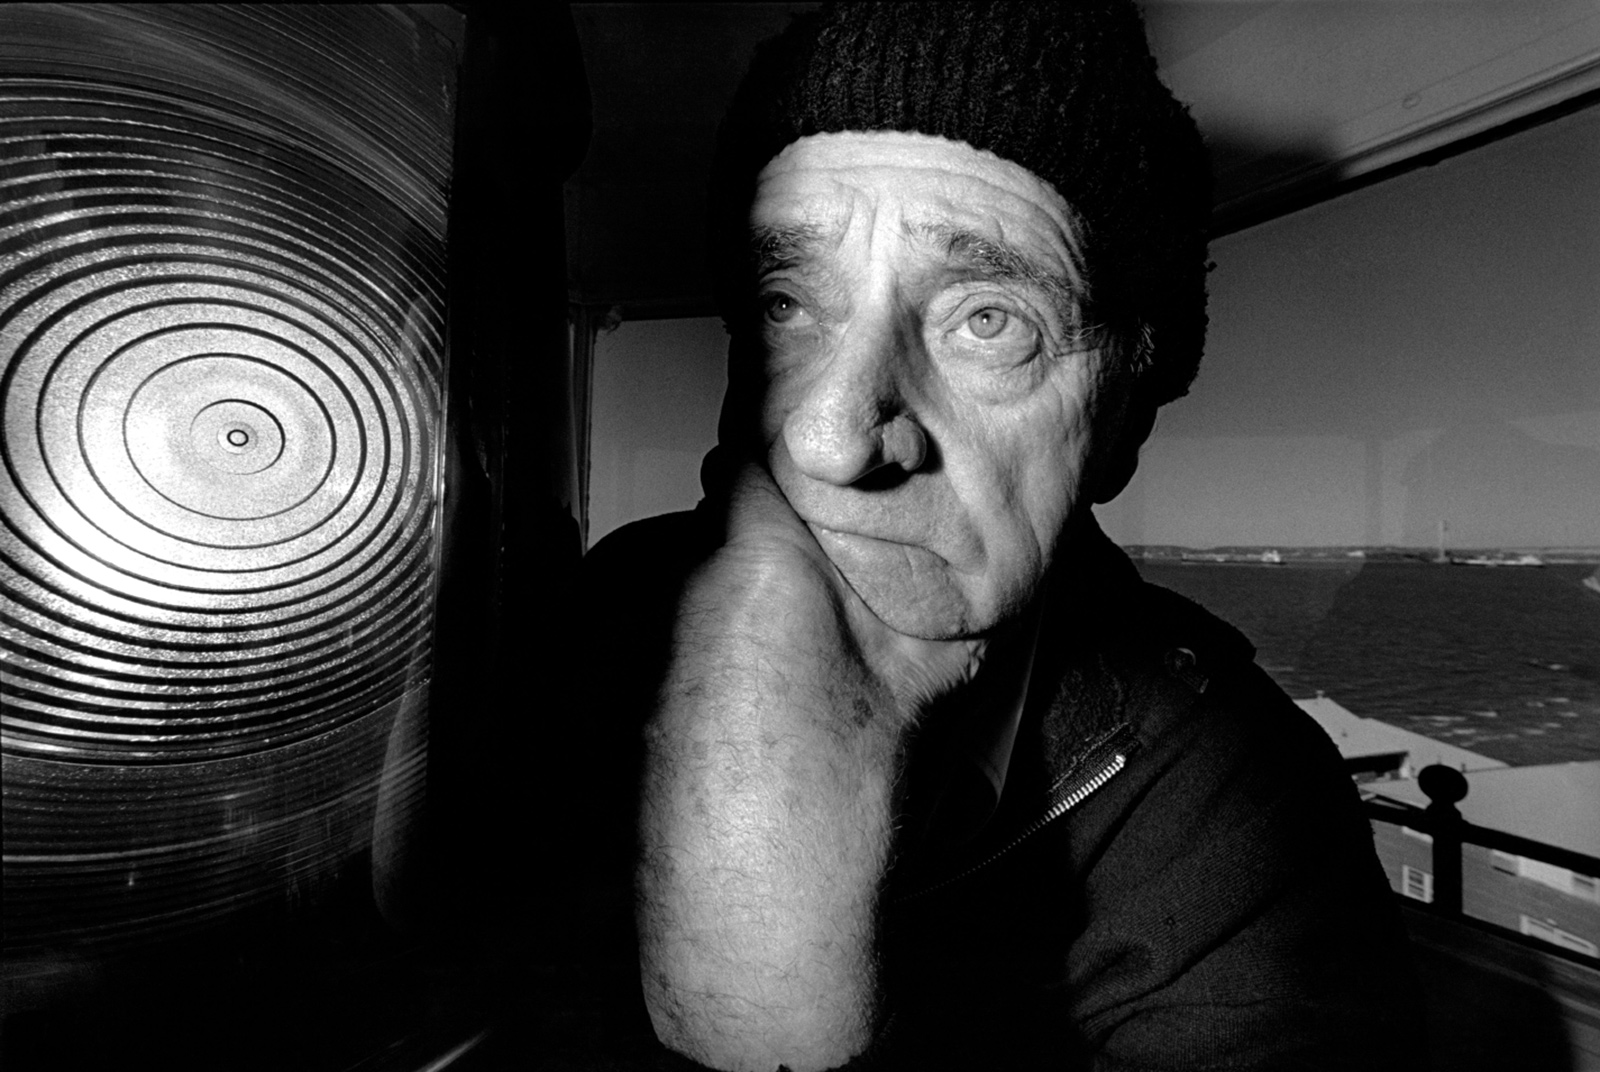 Frank Schubert, aged eighty, when he was the last lighthouse keeper on the Eastern Seaboard, Brooklyn, 1996